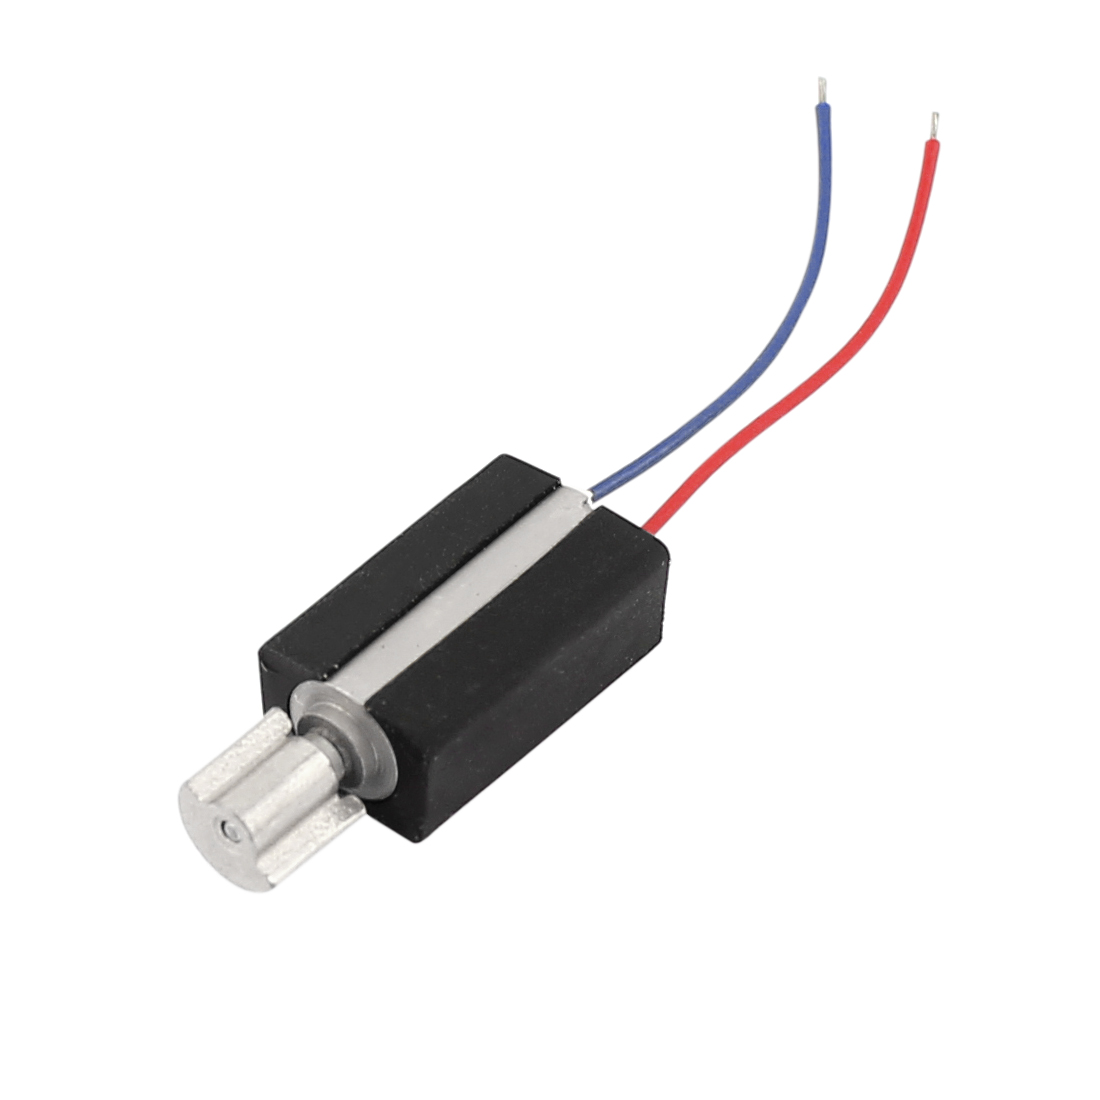 DC 1.3-7V 8000RPM Electric Micro Vibration Coreless Motor for Phone